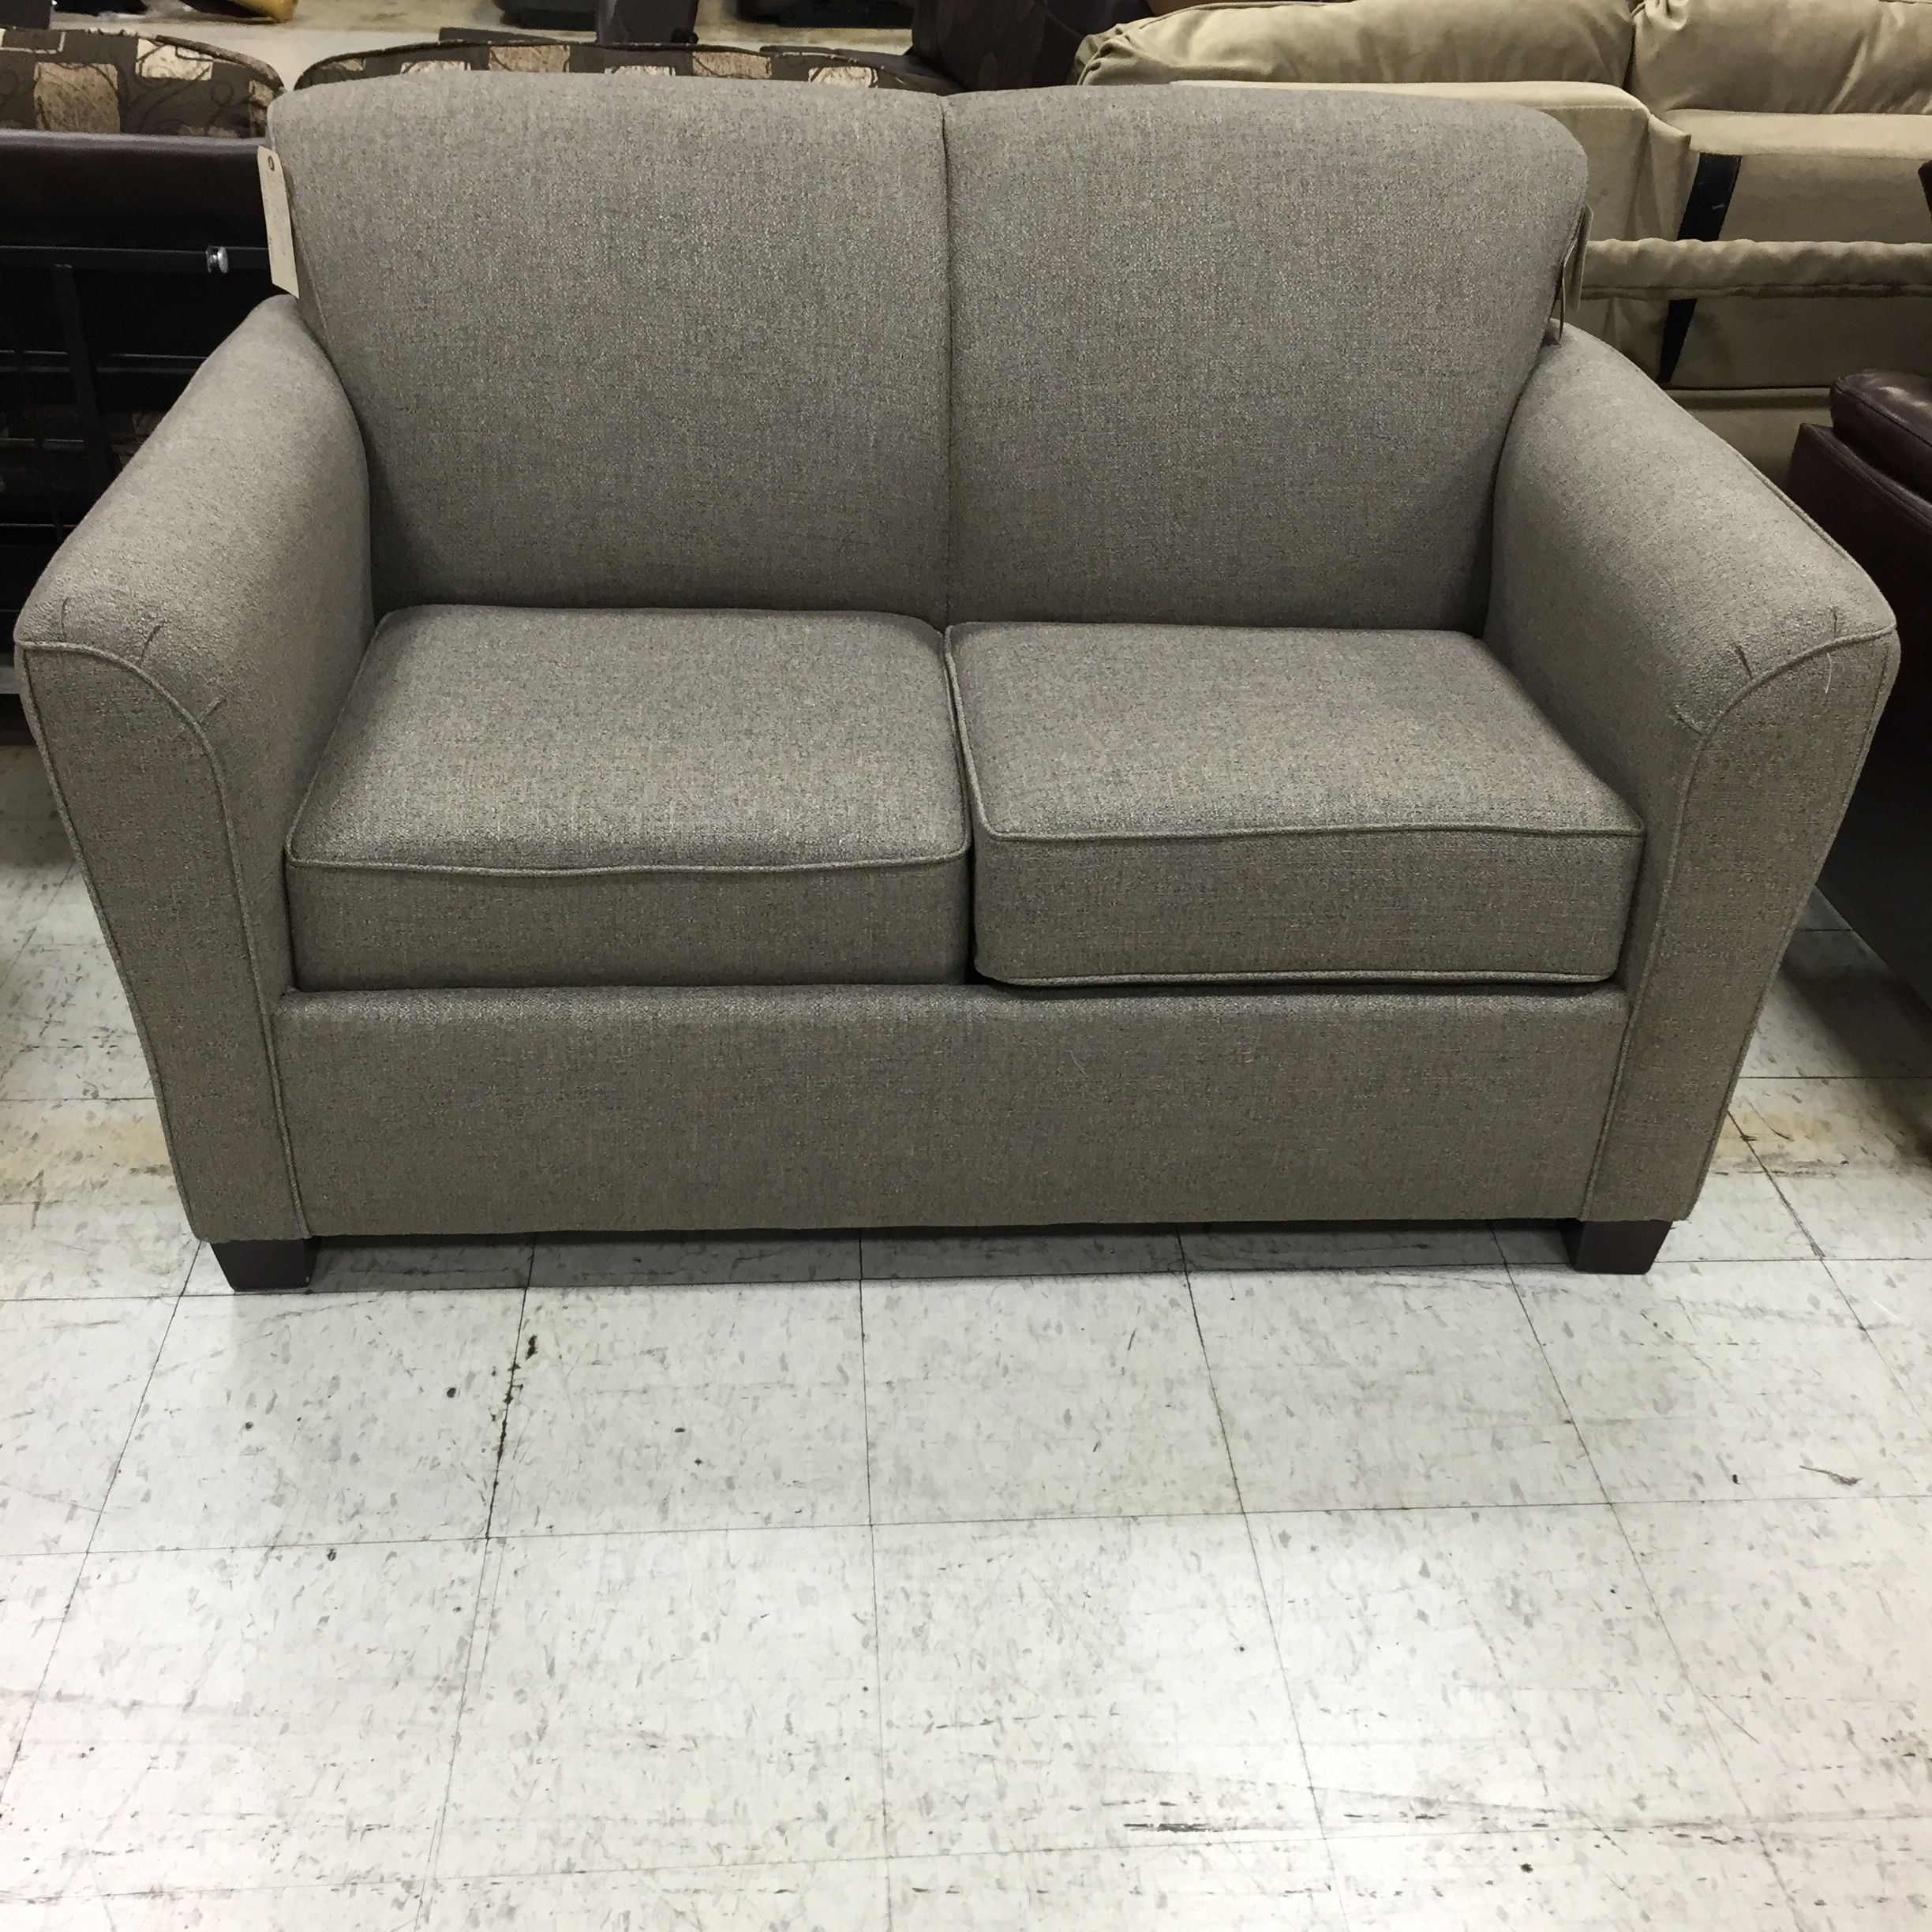 "58"" Cloth Sleeper Sofa Manufactured by Lazy Boy Lazyboy RV"